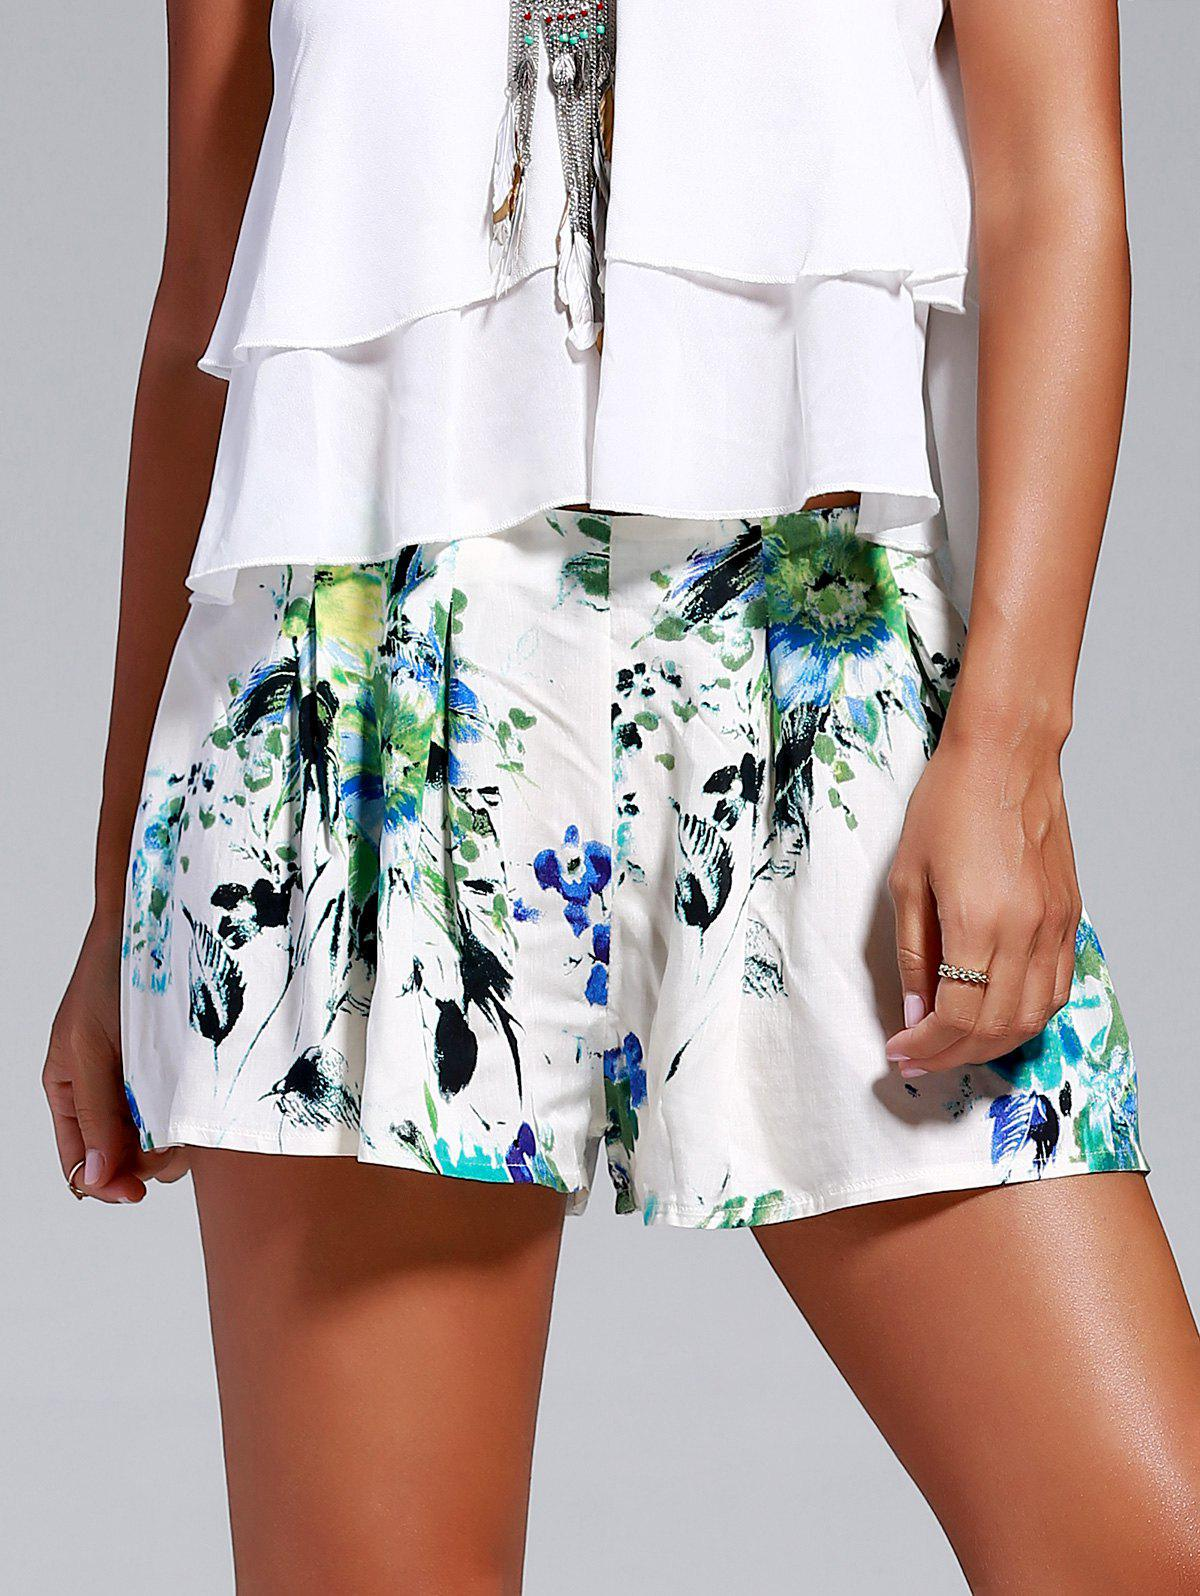 Sweet Women's Floral Print Loosed-Fitting Shorts - WHITE XL